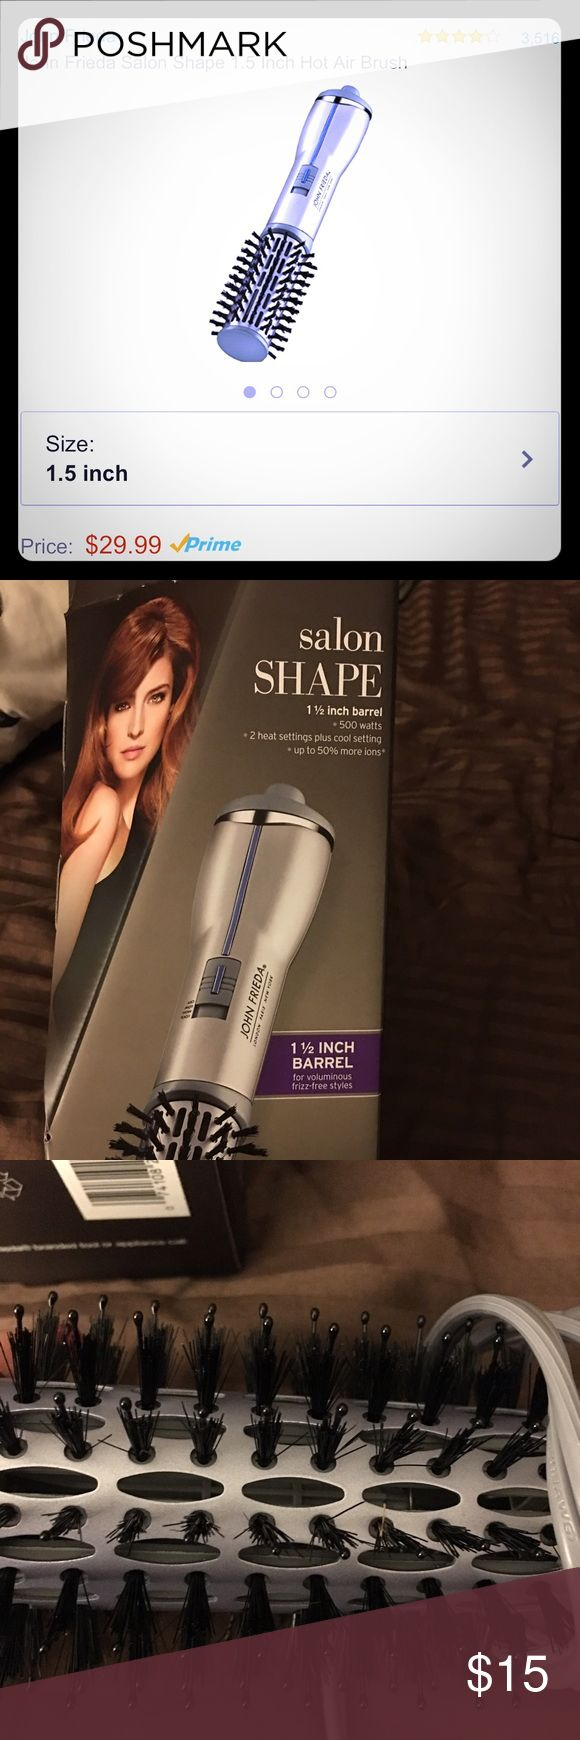 John Frieda Salon Shape Hot Air Brush with box John Frieda Salon Shape Hot Air Brush 1.5 inch barrel. Description in pics. New never used. $15 FINAL PRICE.                                              🚫NO TRADE OR OTHER SELLING APP 🚫NO DISCUSSING PRICES IN COMMENTS,NO LOWBALL OFFERS, NO HOLDS 🎀BUNDLE FOR DISCOUNT 🎀BUY WITH CONFIDENCE. Check out my love notes from previous customers.  🎀DO ASK QUESTIONS AND REQUEST PICS IF NEEDED. John Frieda Accessories Hair Accessories